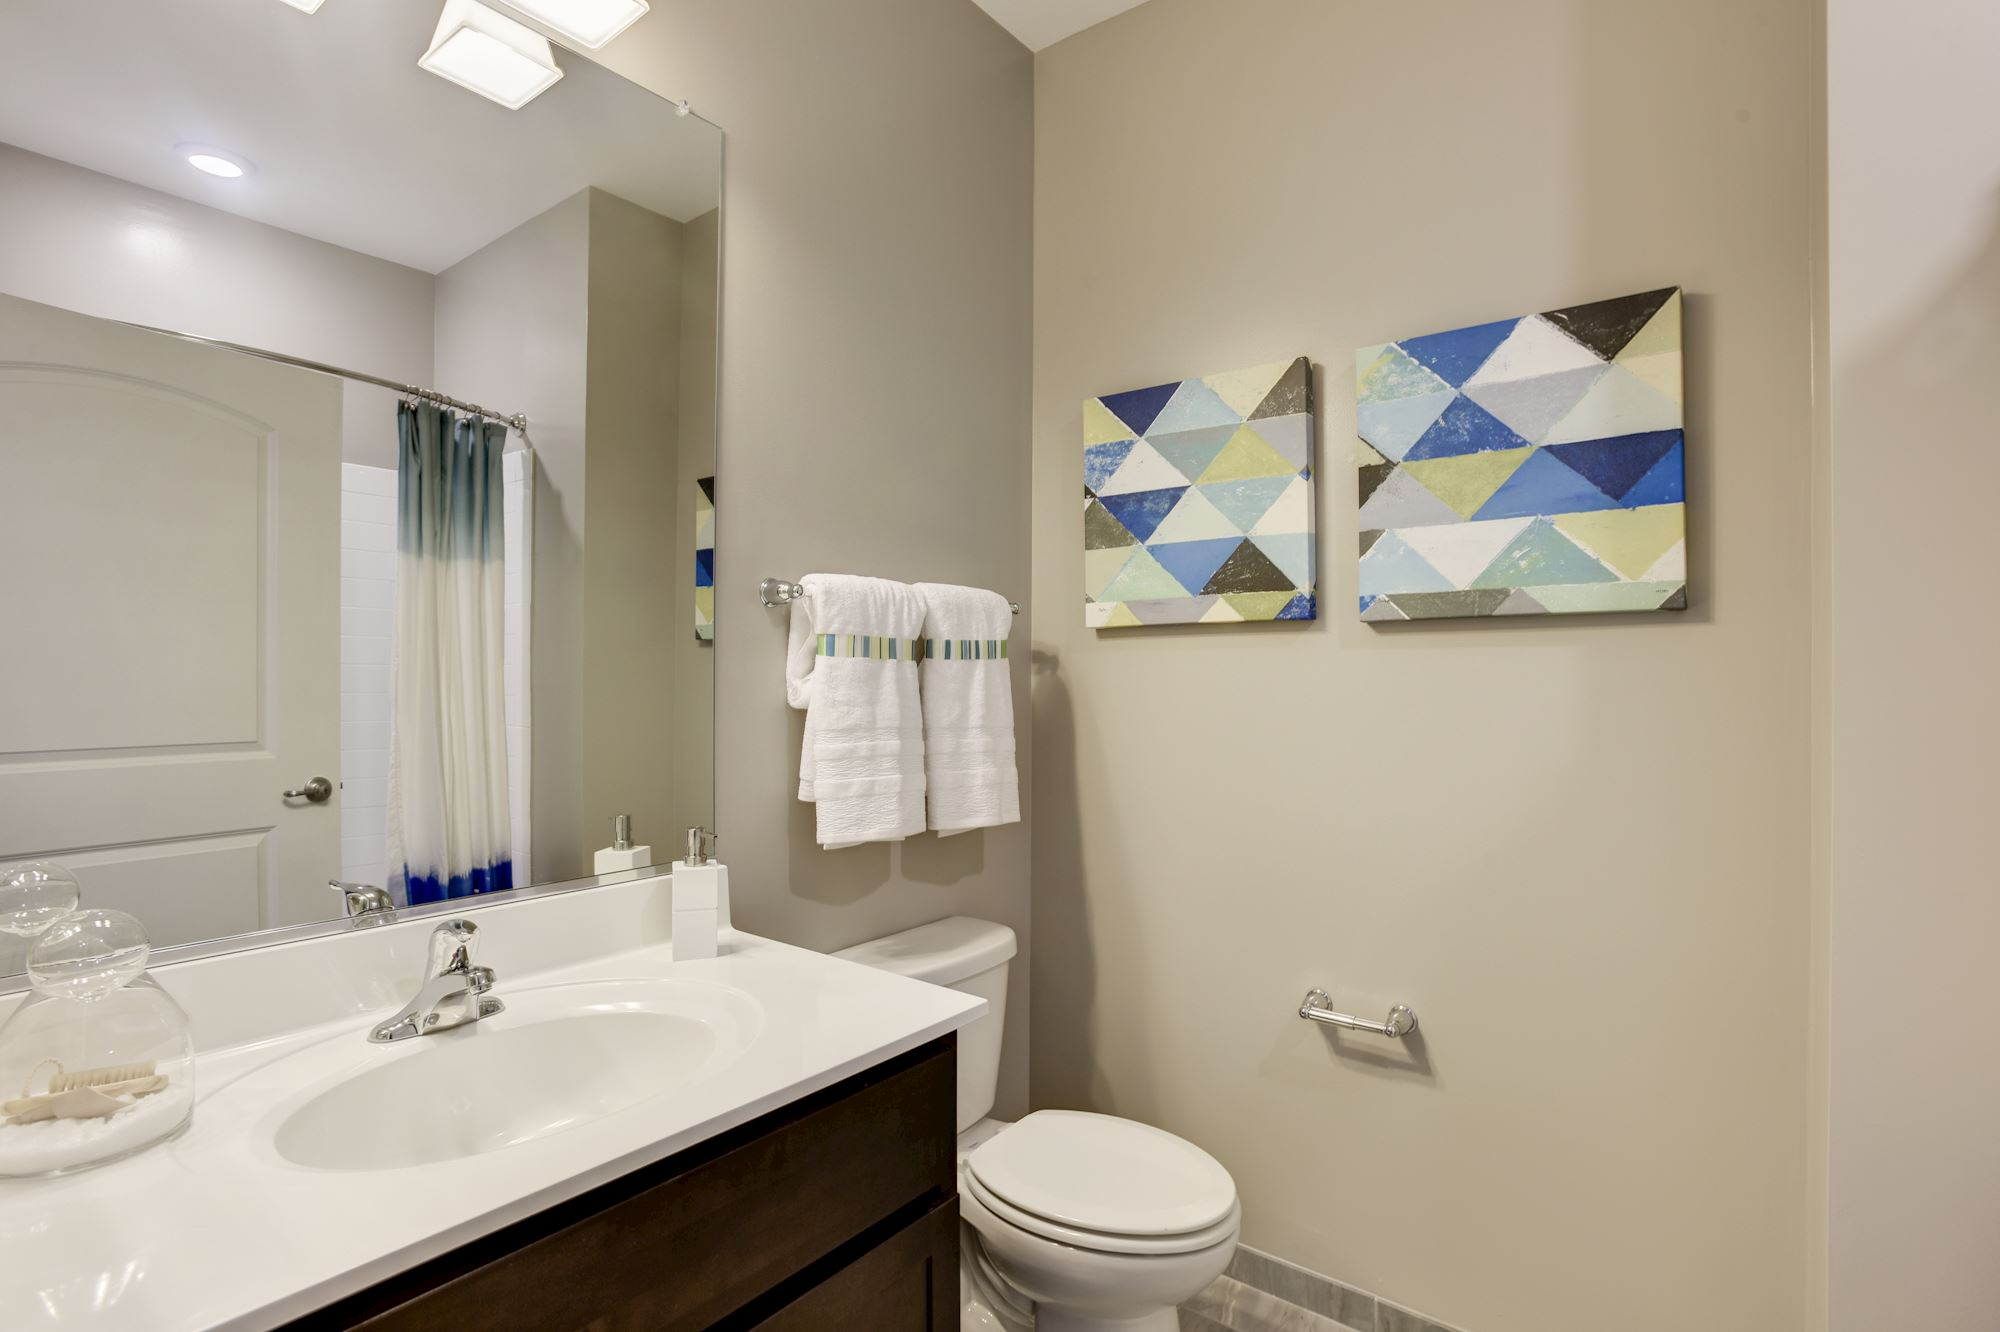 Avanti Luxury Apartments in Bel Air, MD - Bathroom